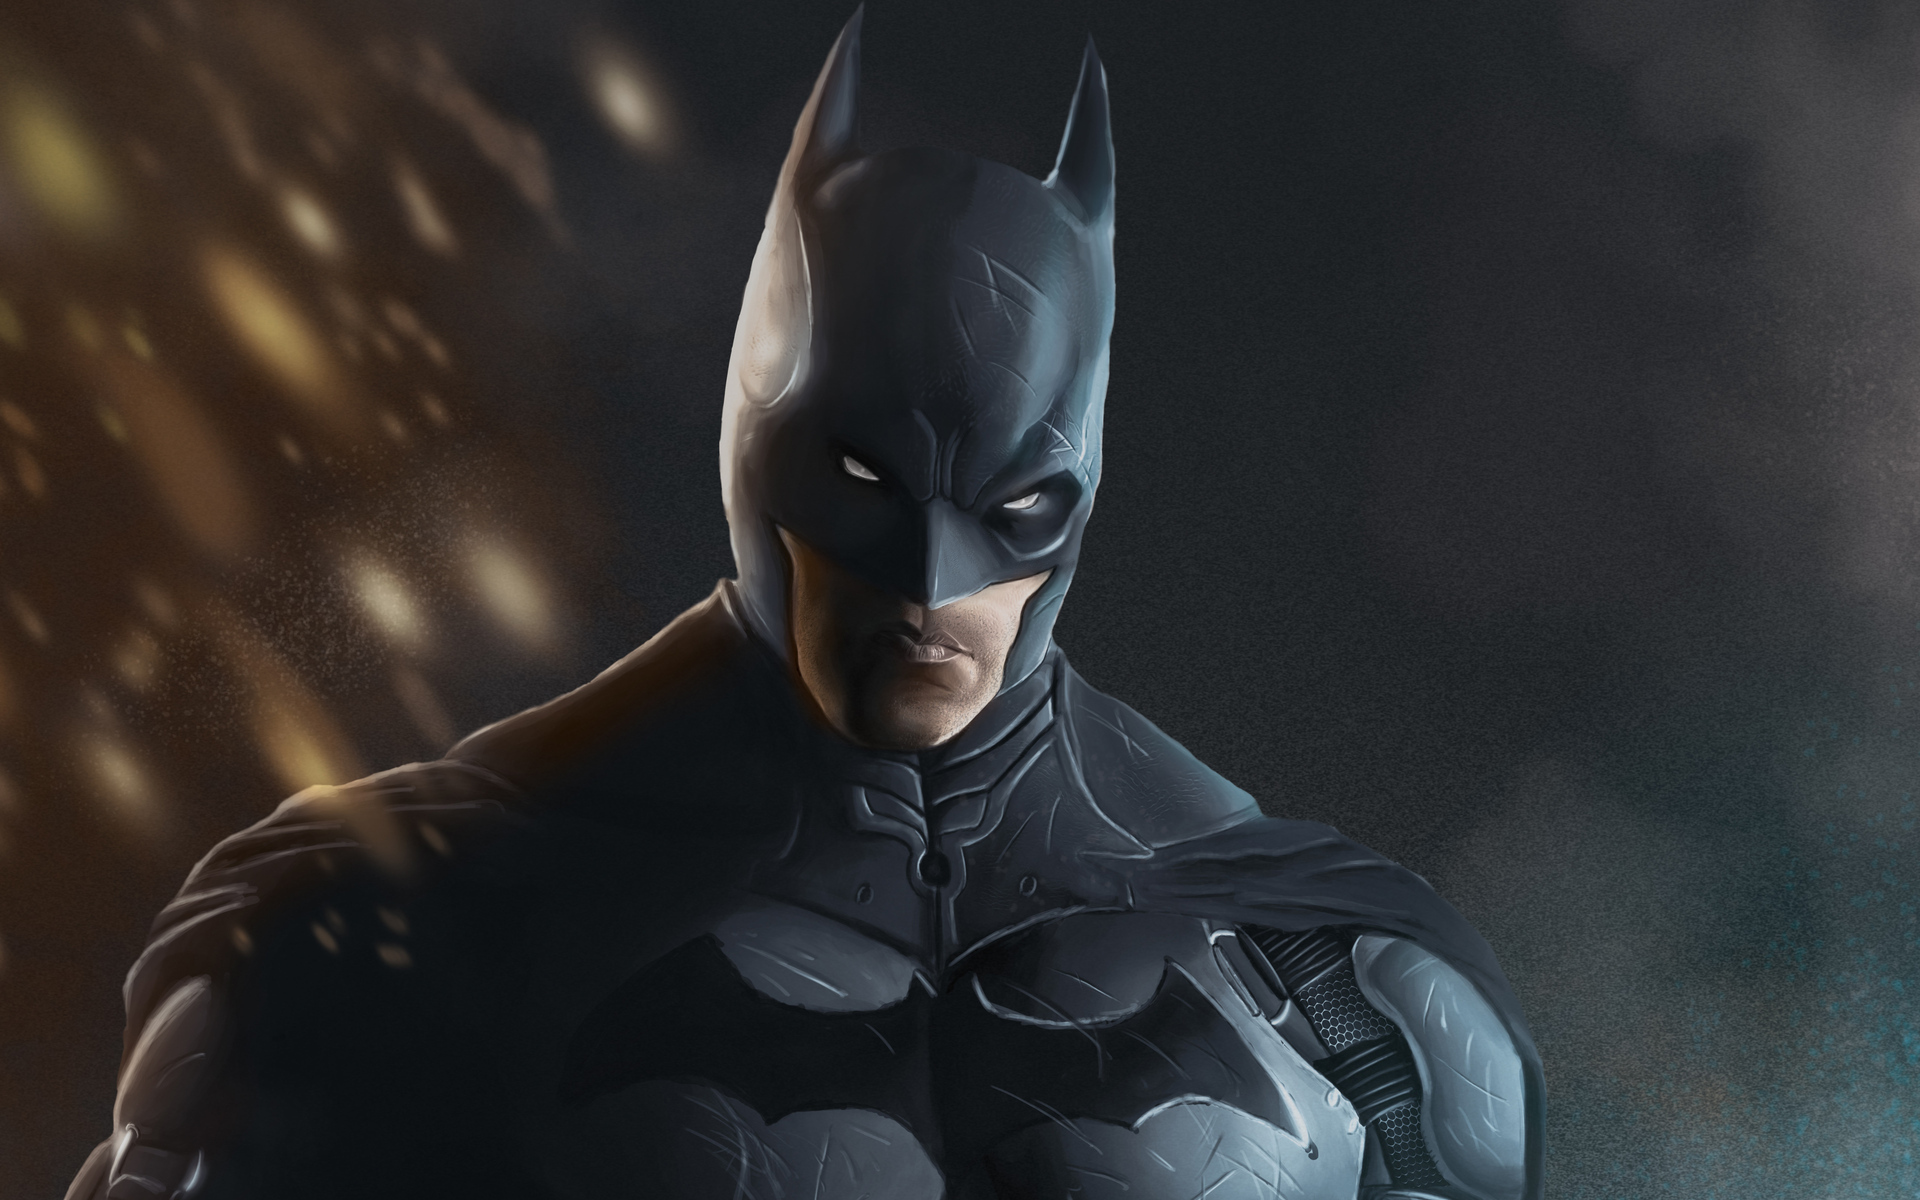 batman-arkham-knight-5k-73.jpg